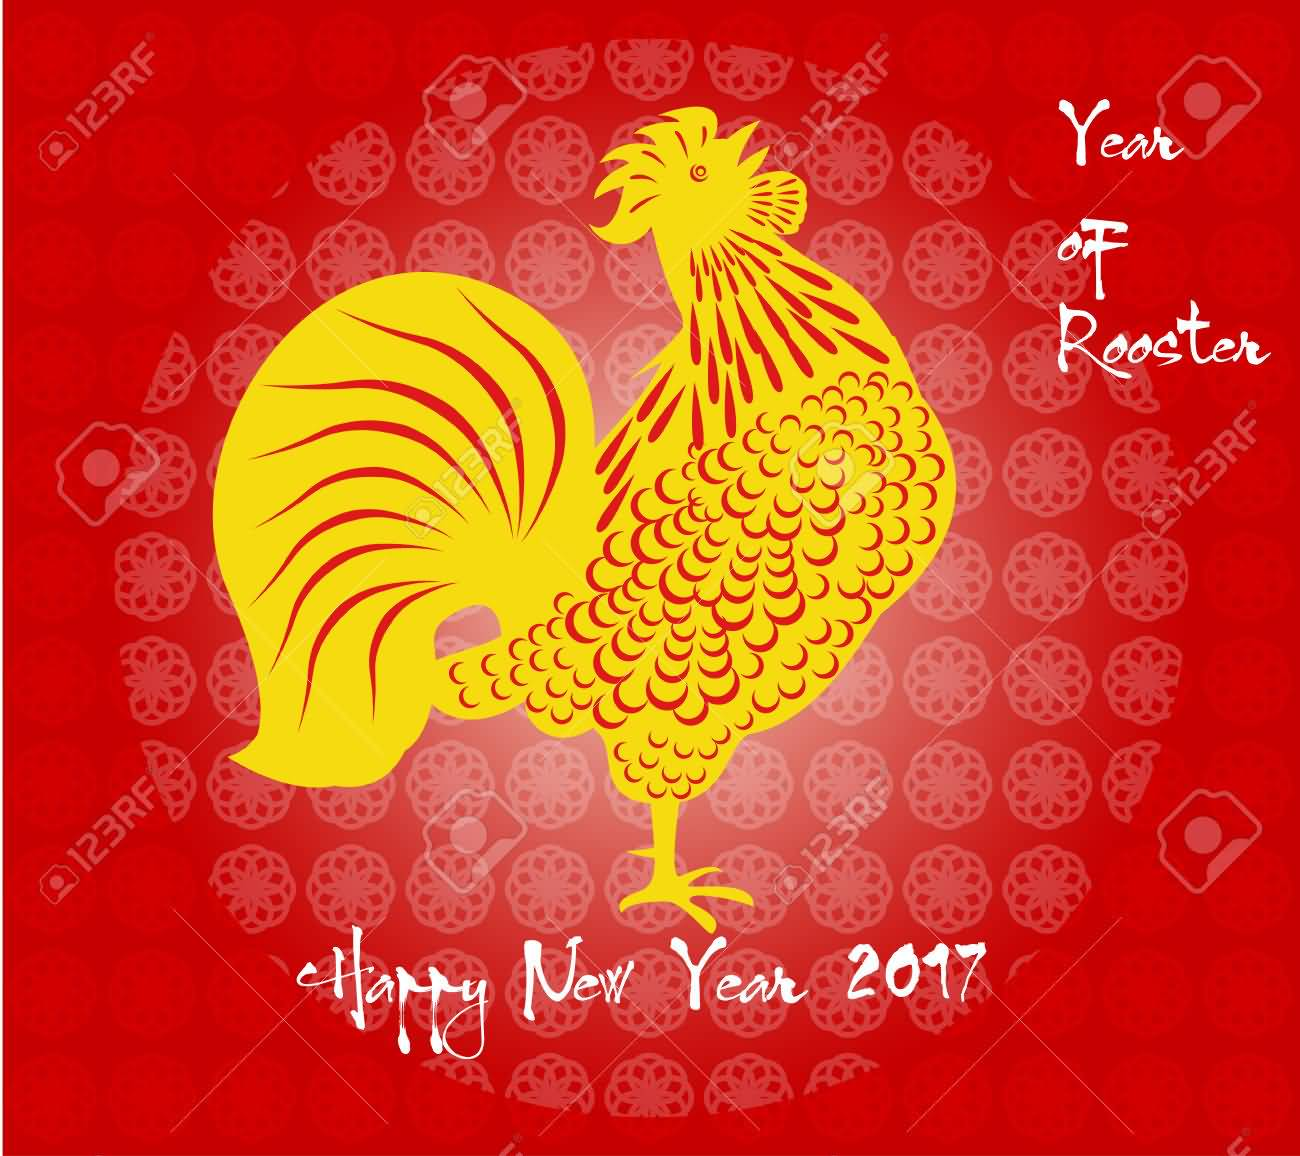 Year of rooster happy chinese new year 2017 greeting card kristyandbryce Choice Image